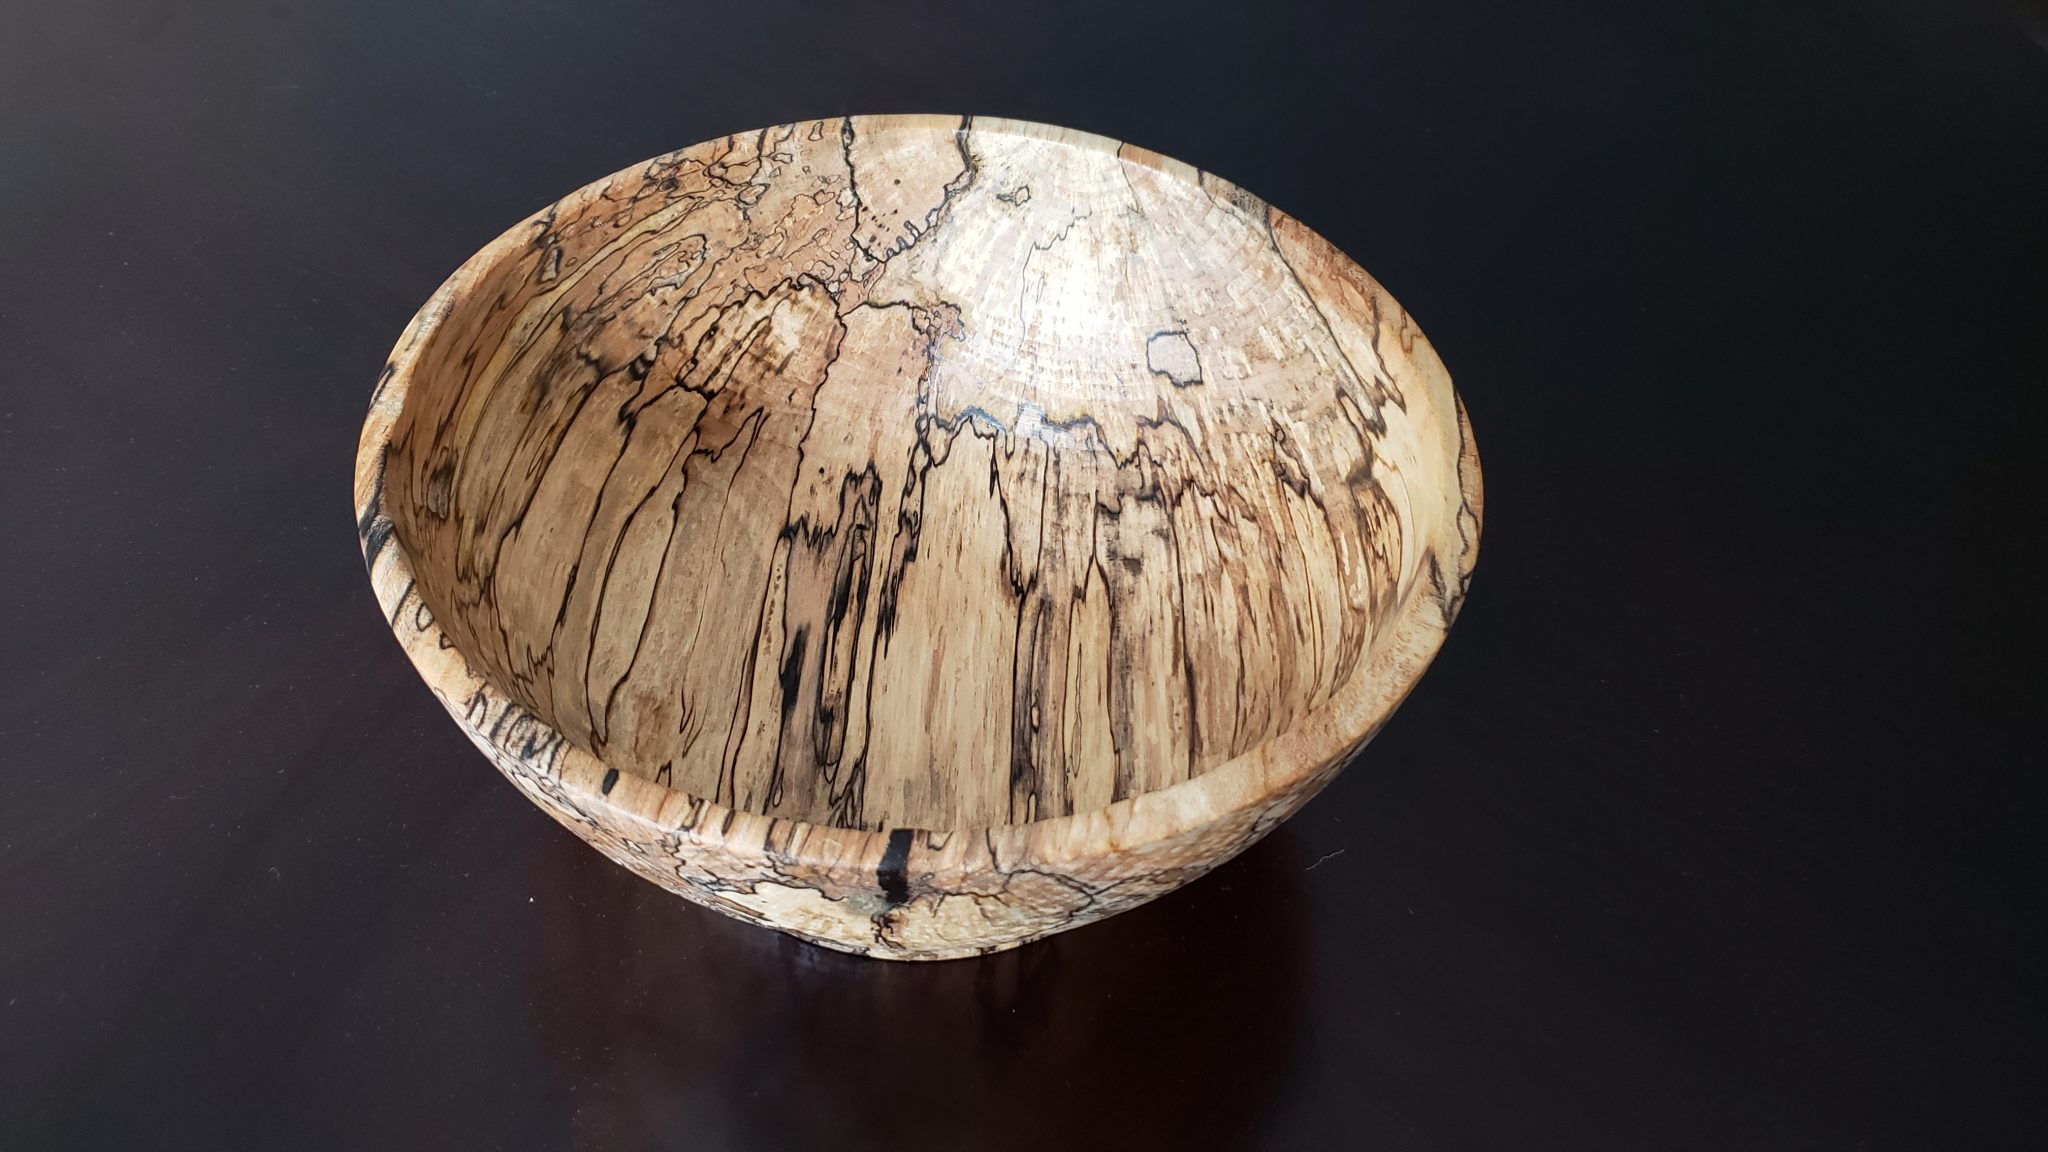 Deep fruit bowl from spalted Maple